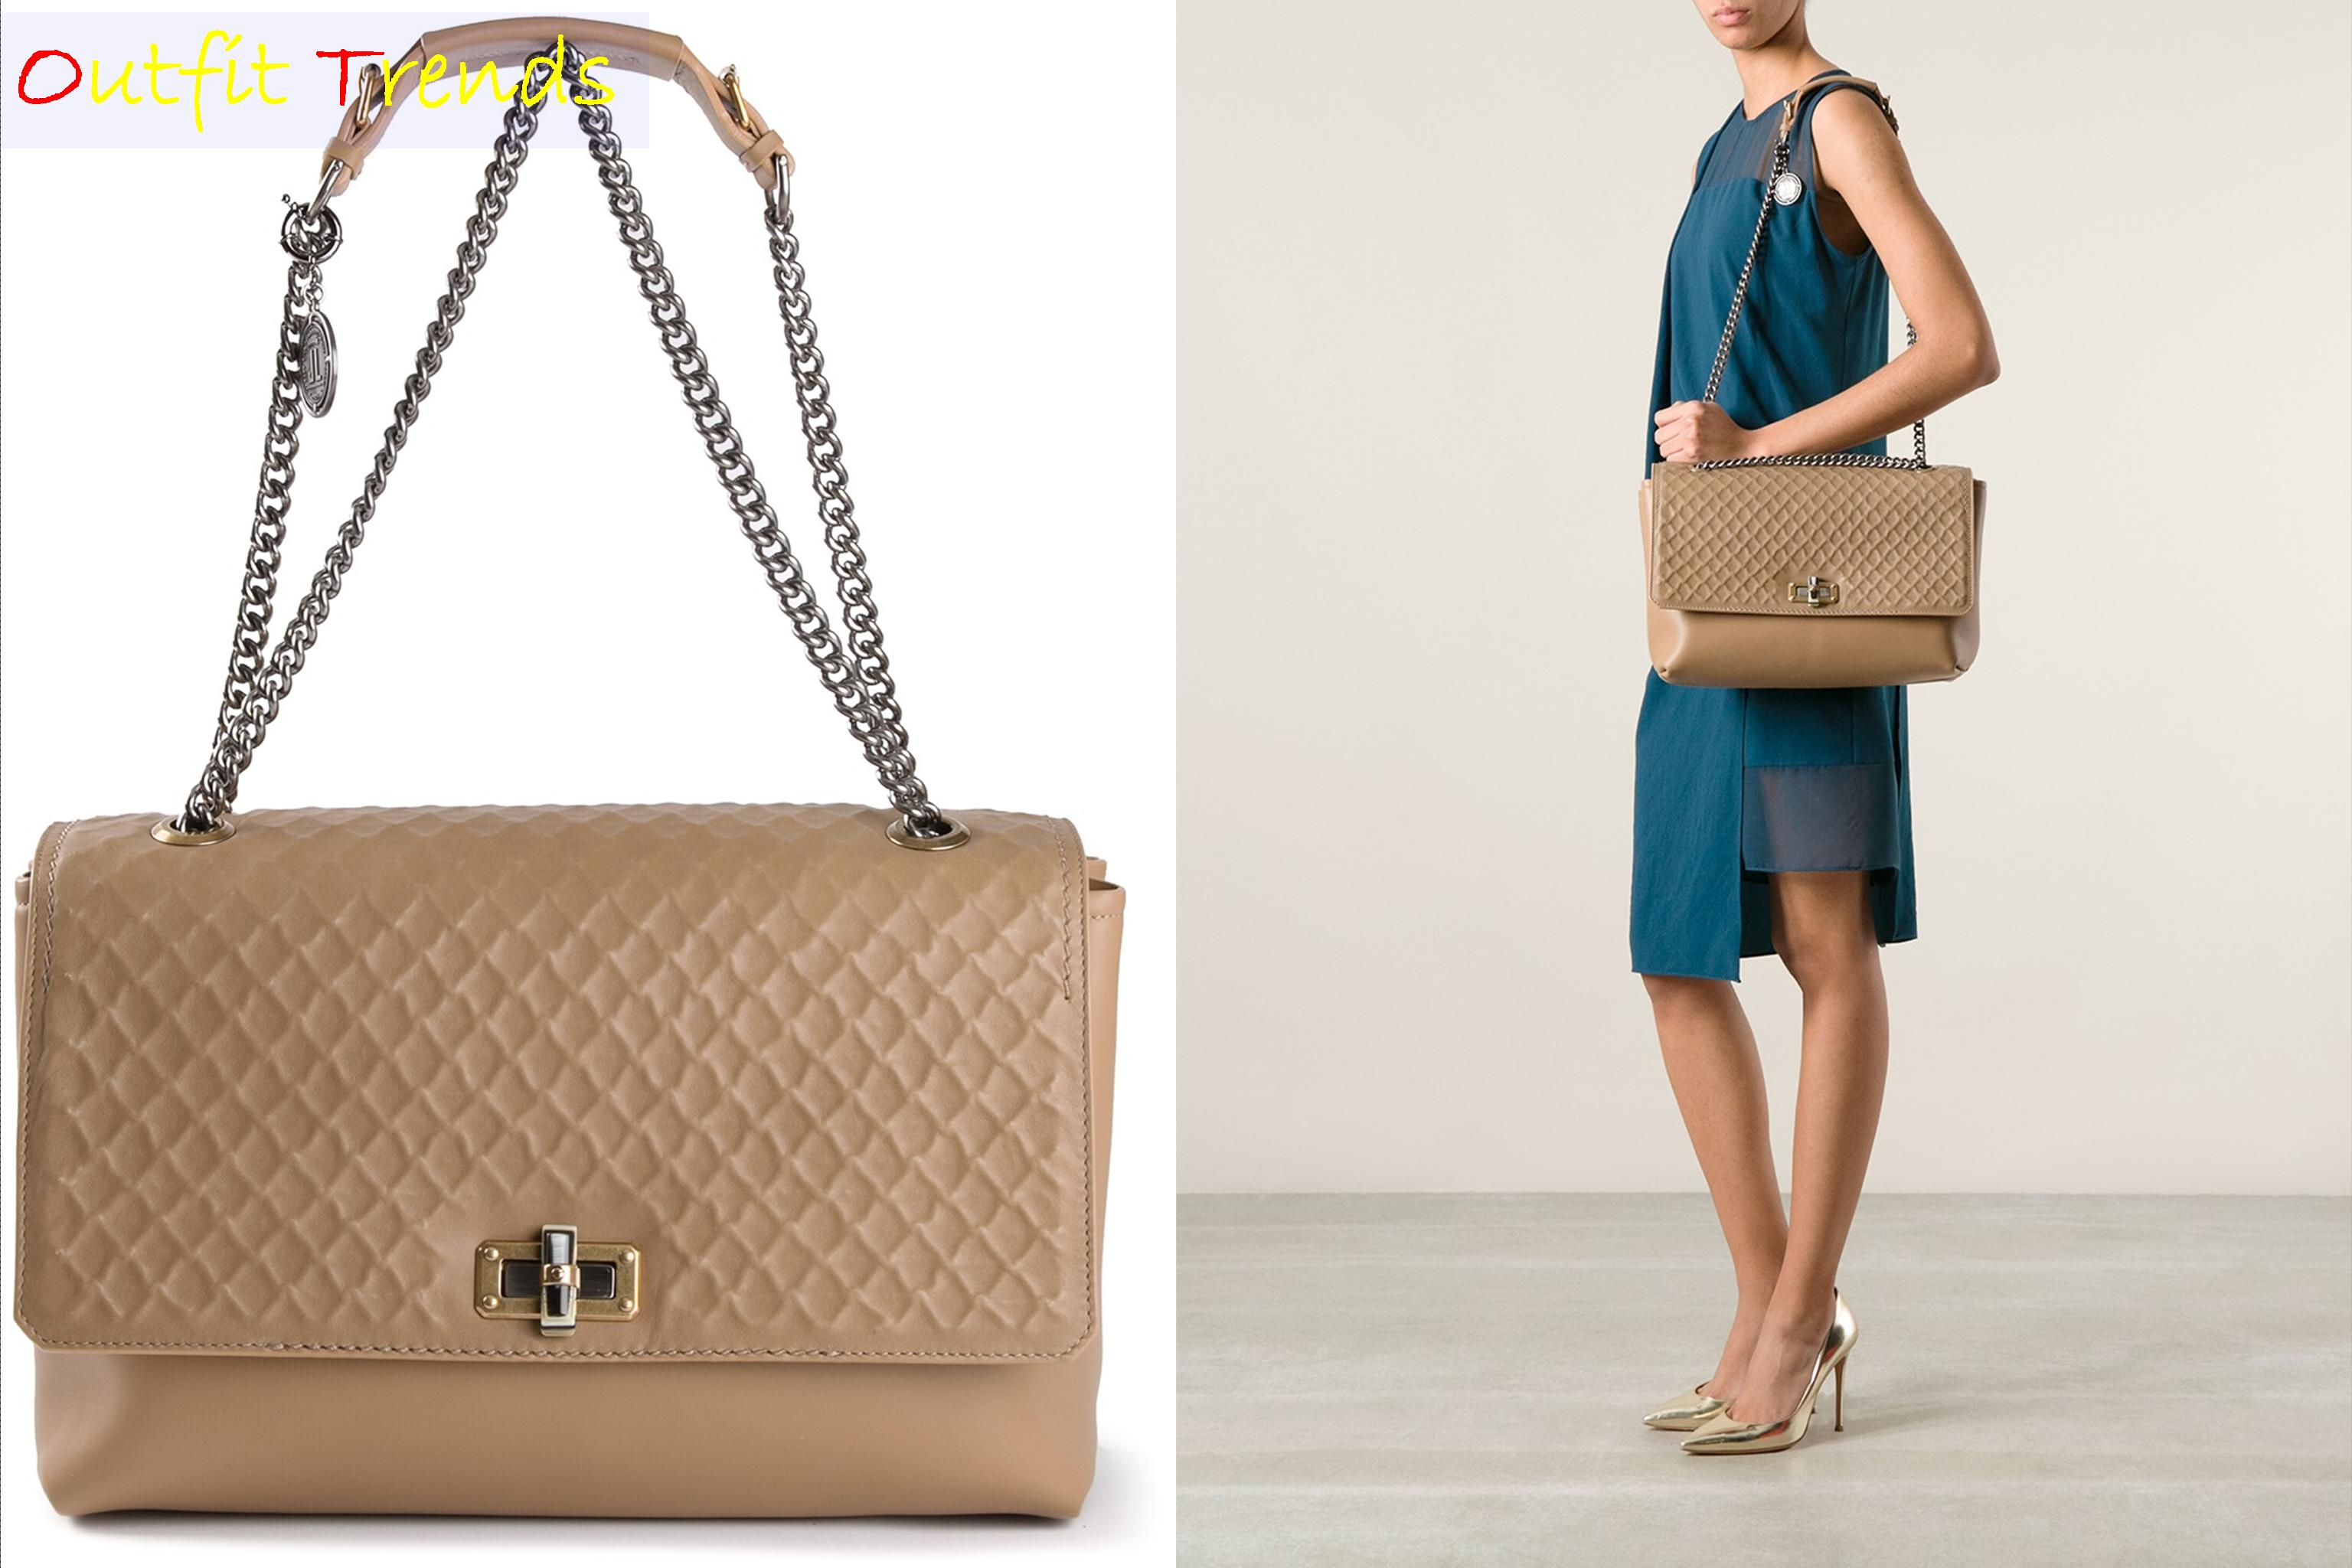 41b7613618 13 Most Fashionable and Stylish Tote Bags for Women